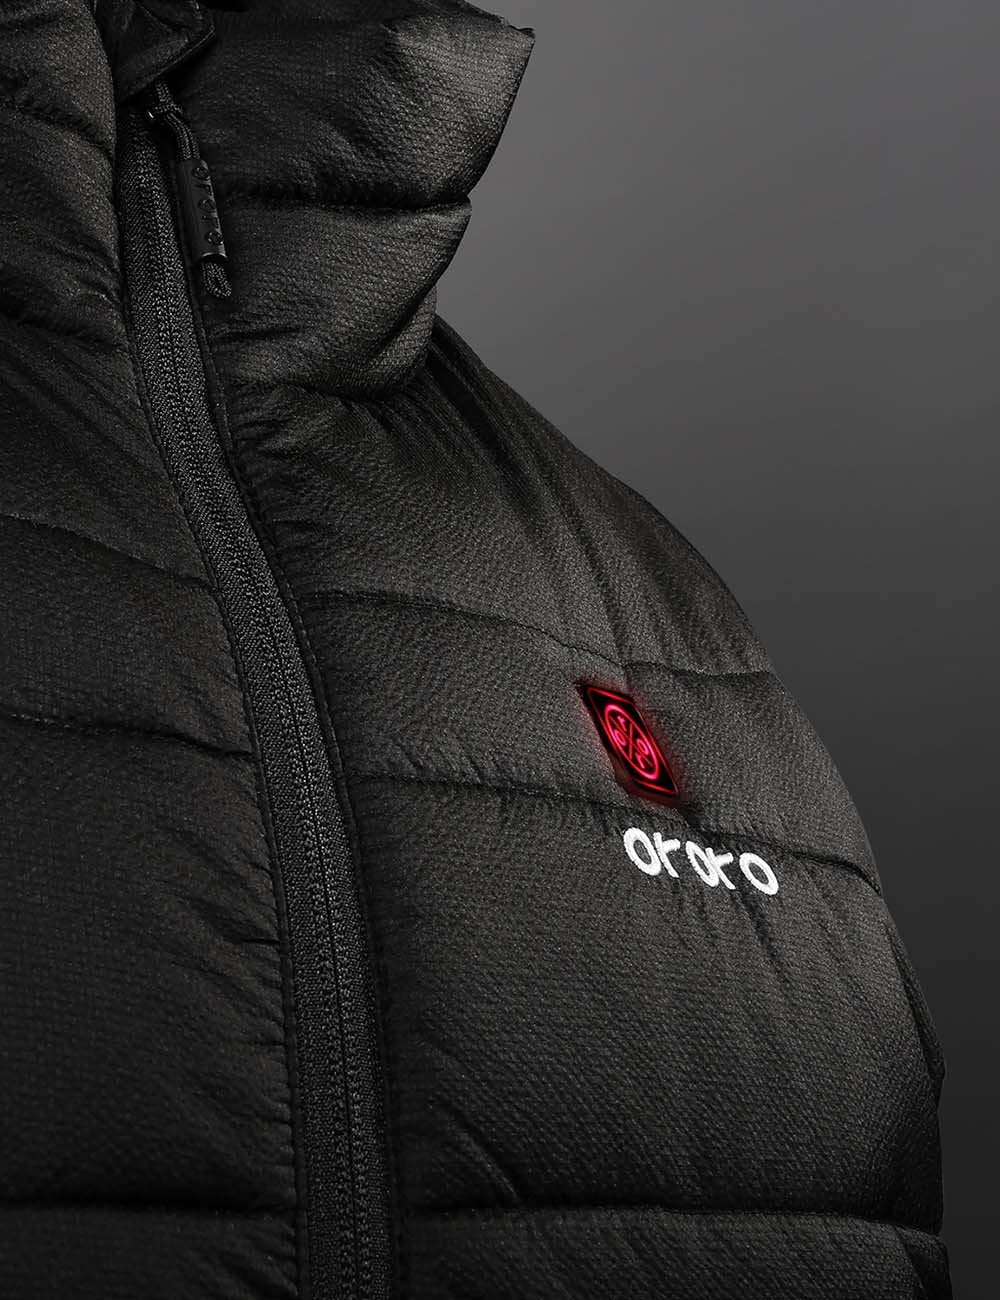 ORORO Men Heated Padded Vest